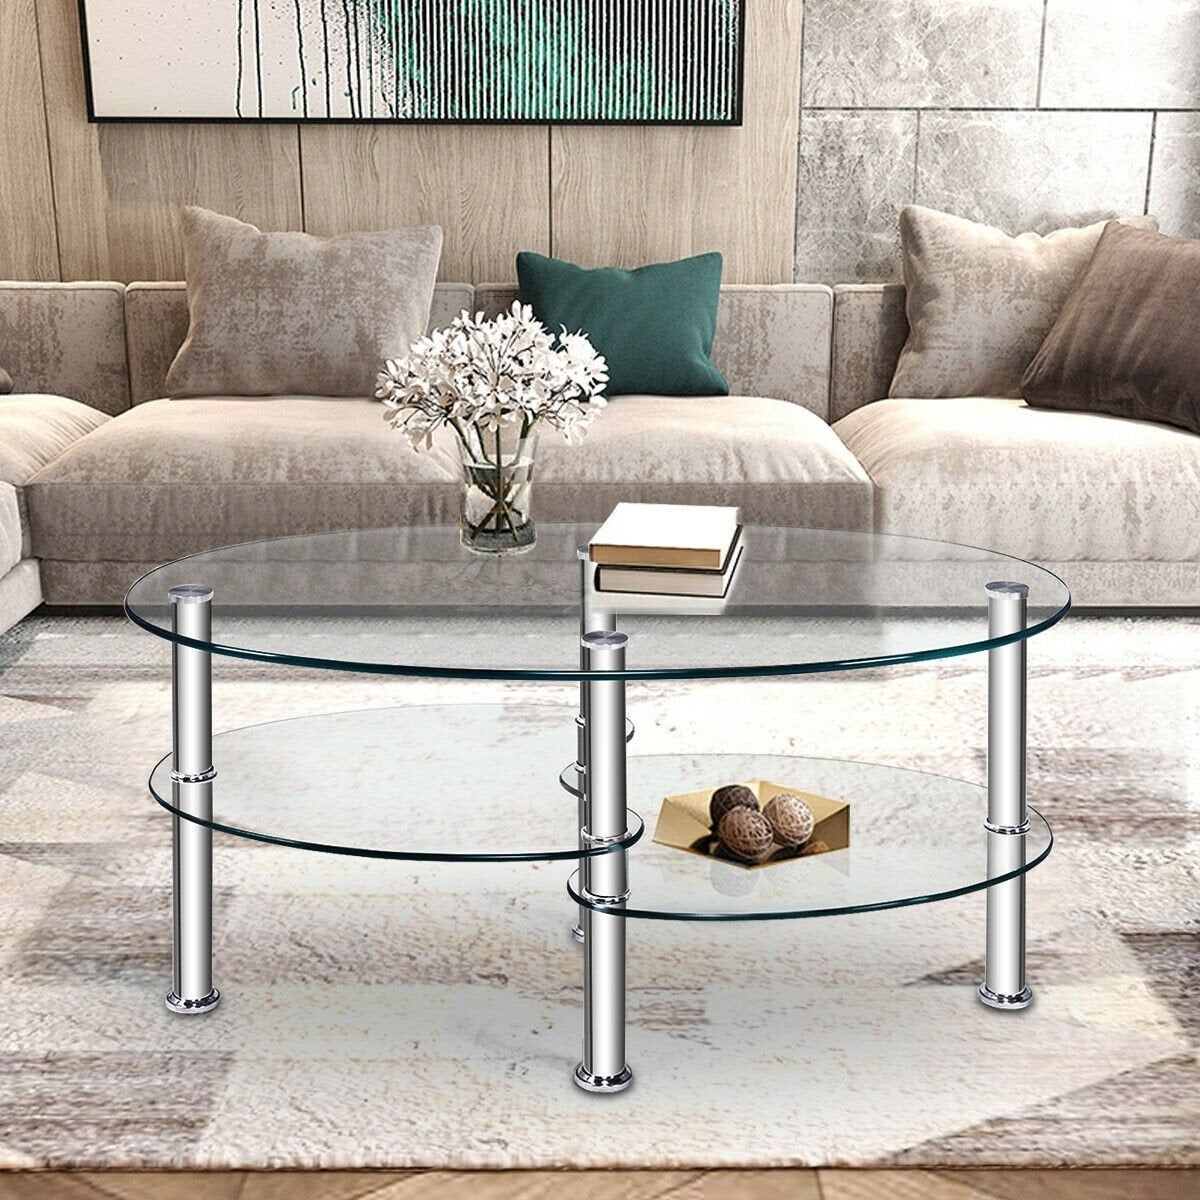 Modern Tempered Glass Oval Side Coffee Table Center For Living Etsy In 2021 Coffee Table Side Coffee Table Elegant Coffee Table [ 1200 x 1200 Pixel ]